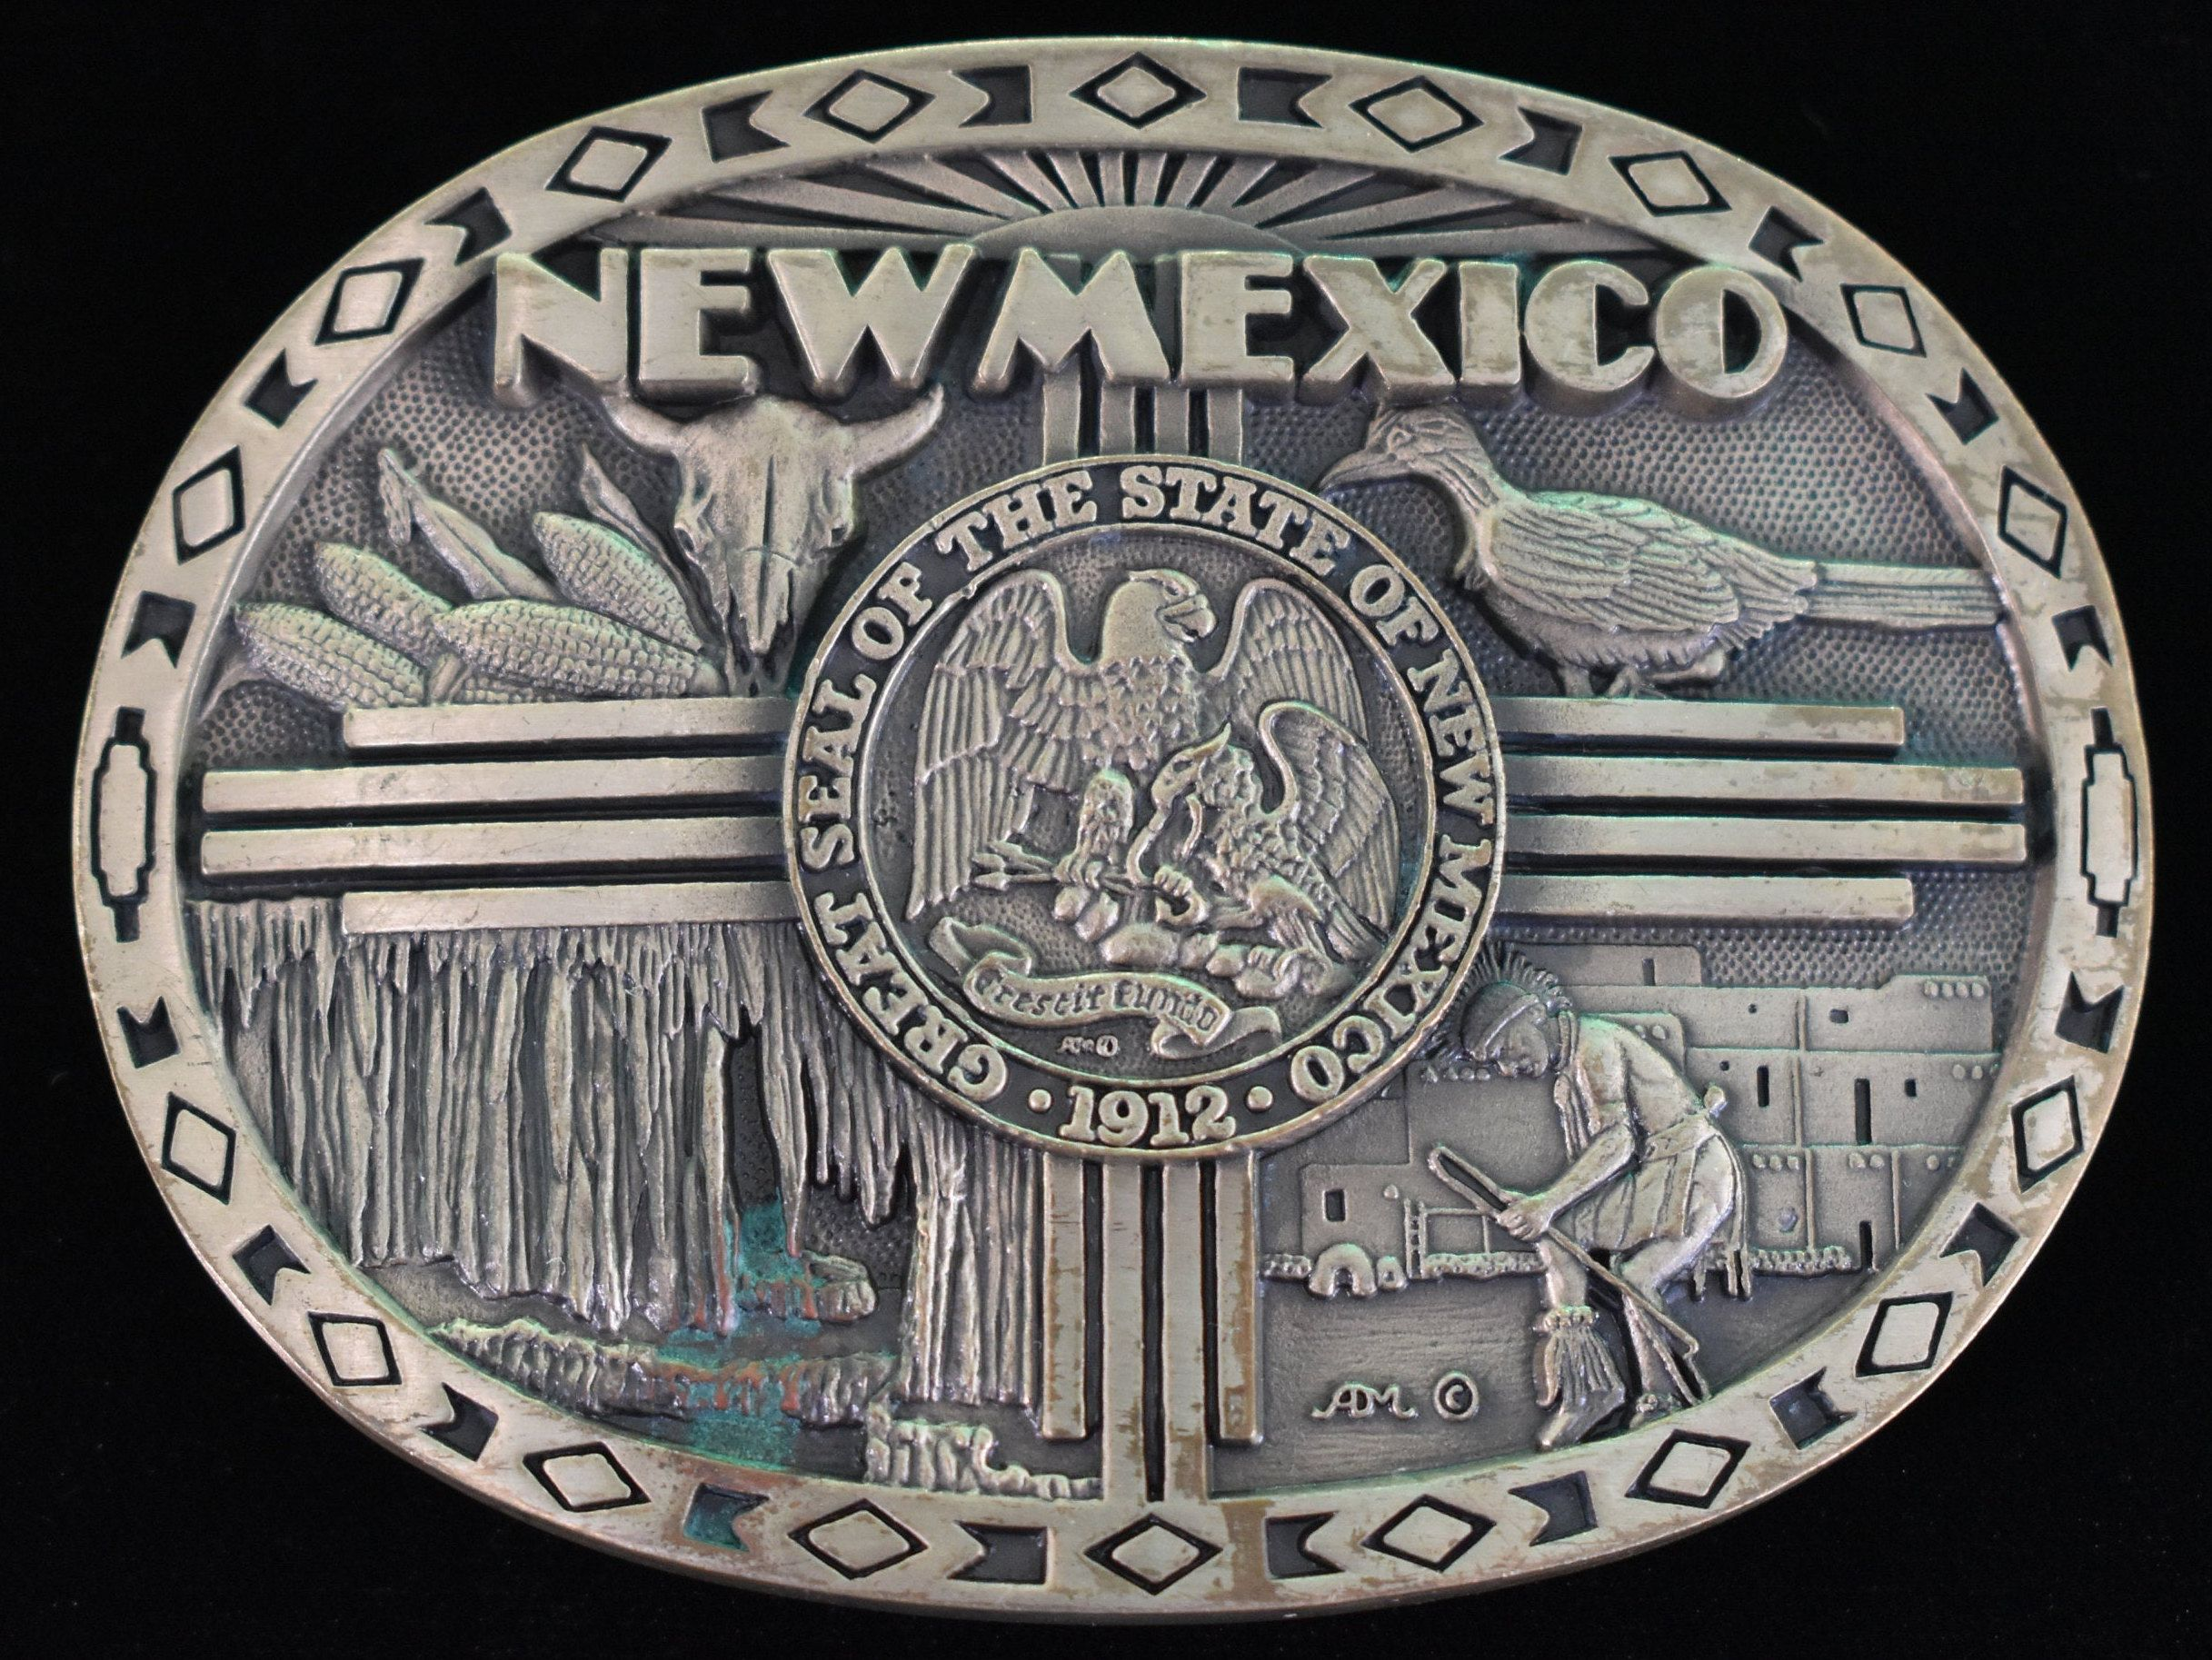 New Mexico Solid Brass 1980s Vintage Belt Buckle Etsy In 2020 Vintage Belt Buckles Vintage Belts 1980s Vintage